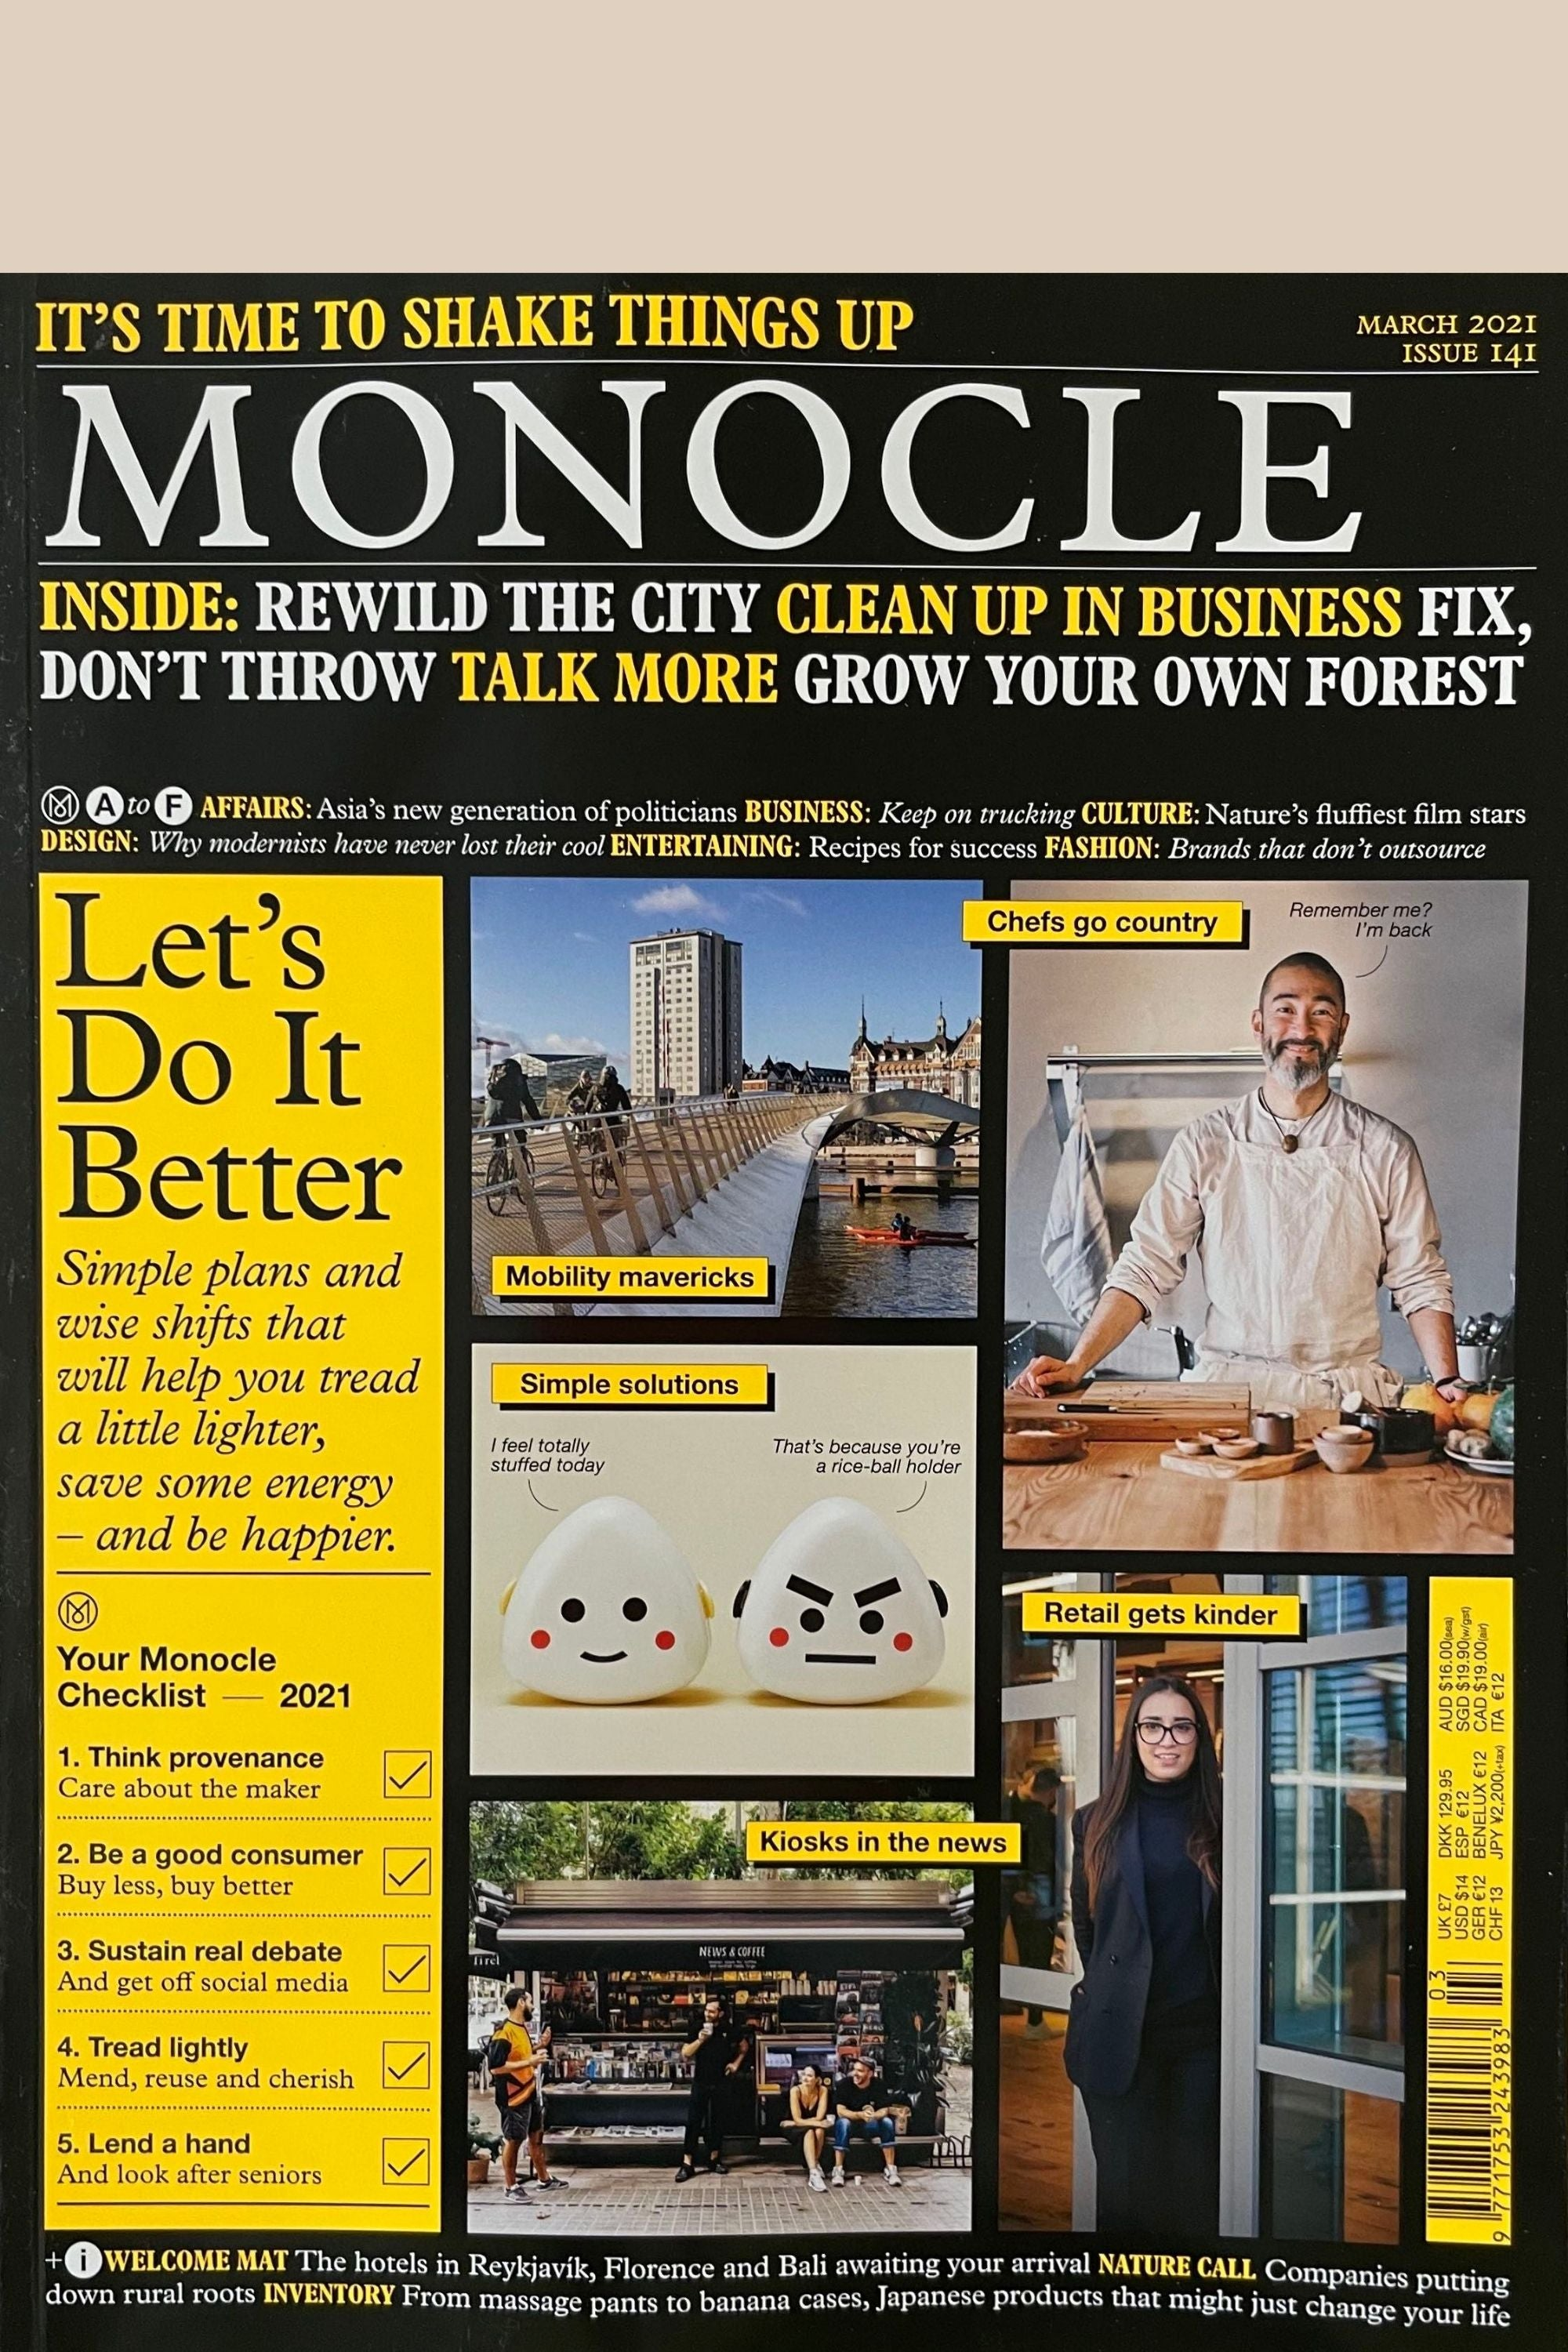 Monocle Issue 141 March 2021